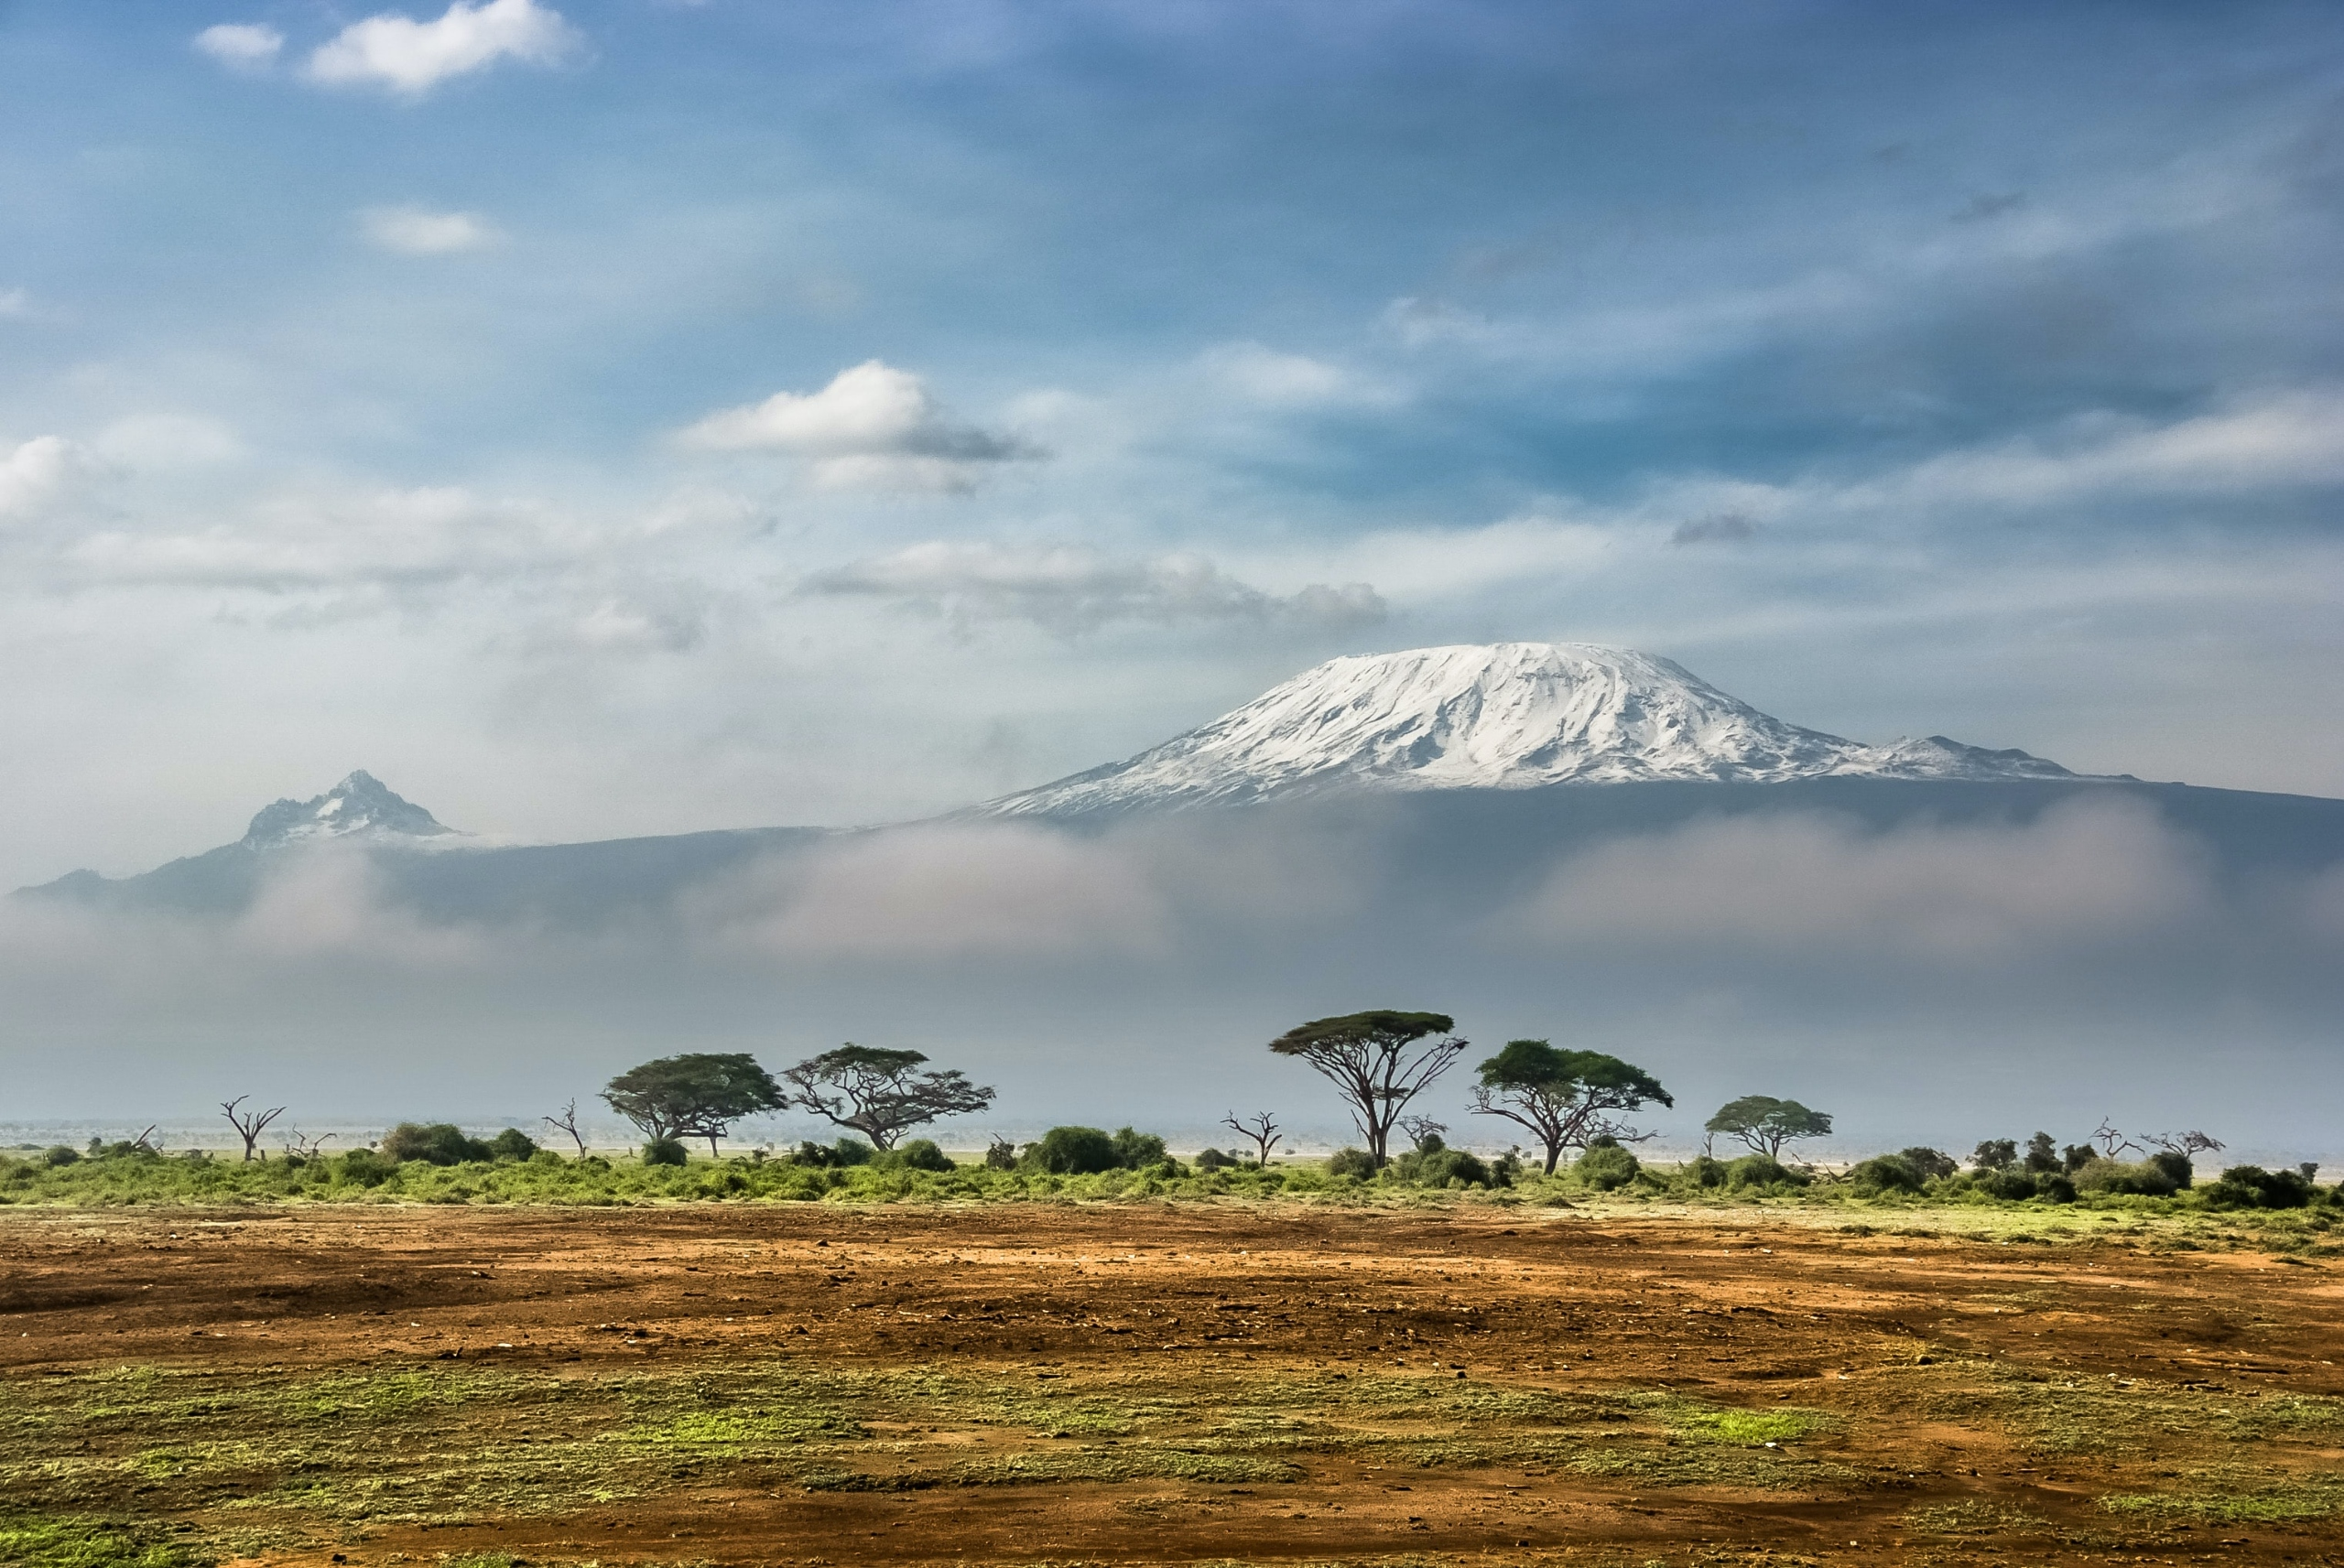 Mt. Kilimanjaro is located in one of the best countries to visit in Africa.